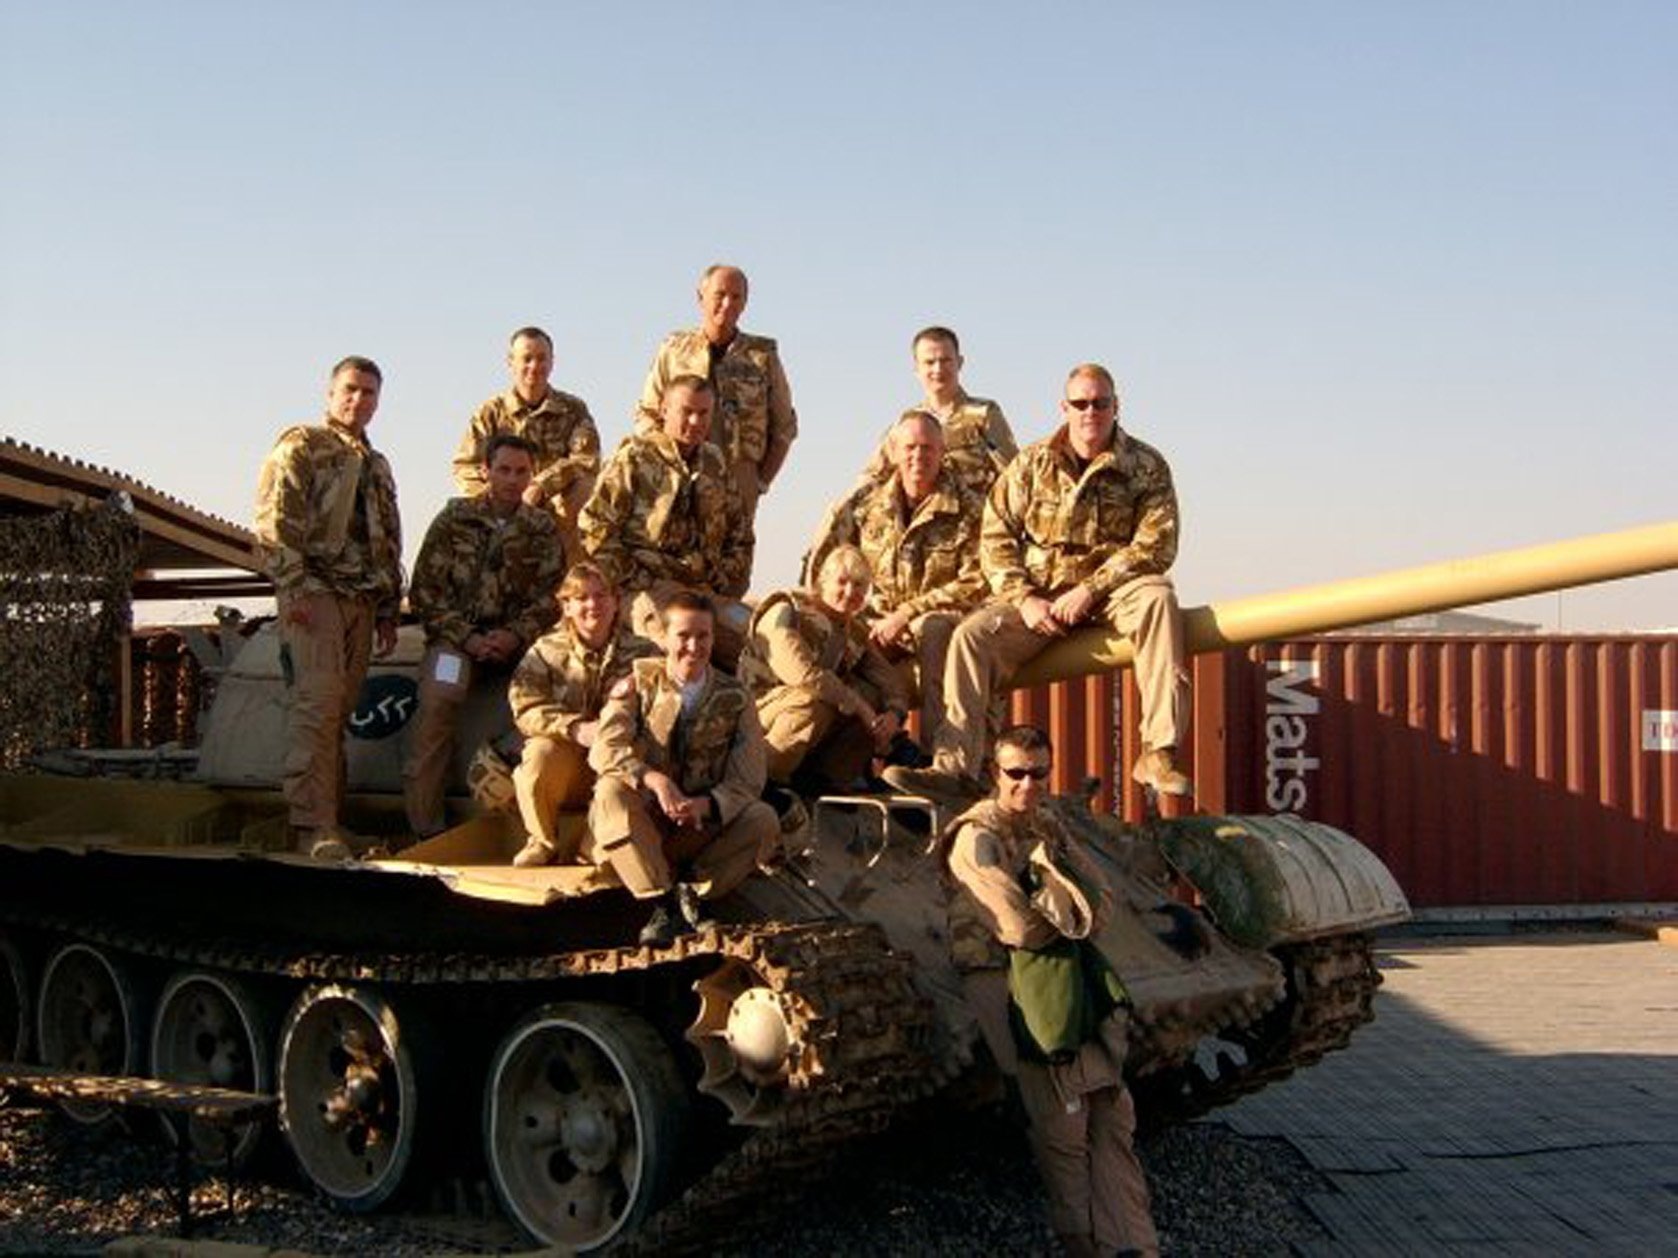 Shelley Charlton with her former RAF colleagues sitting on a non-functioning tank in Basra, Iraq.